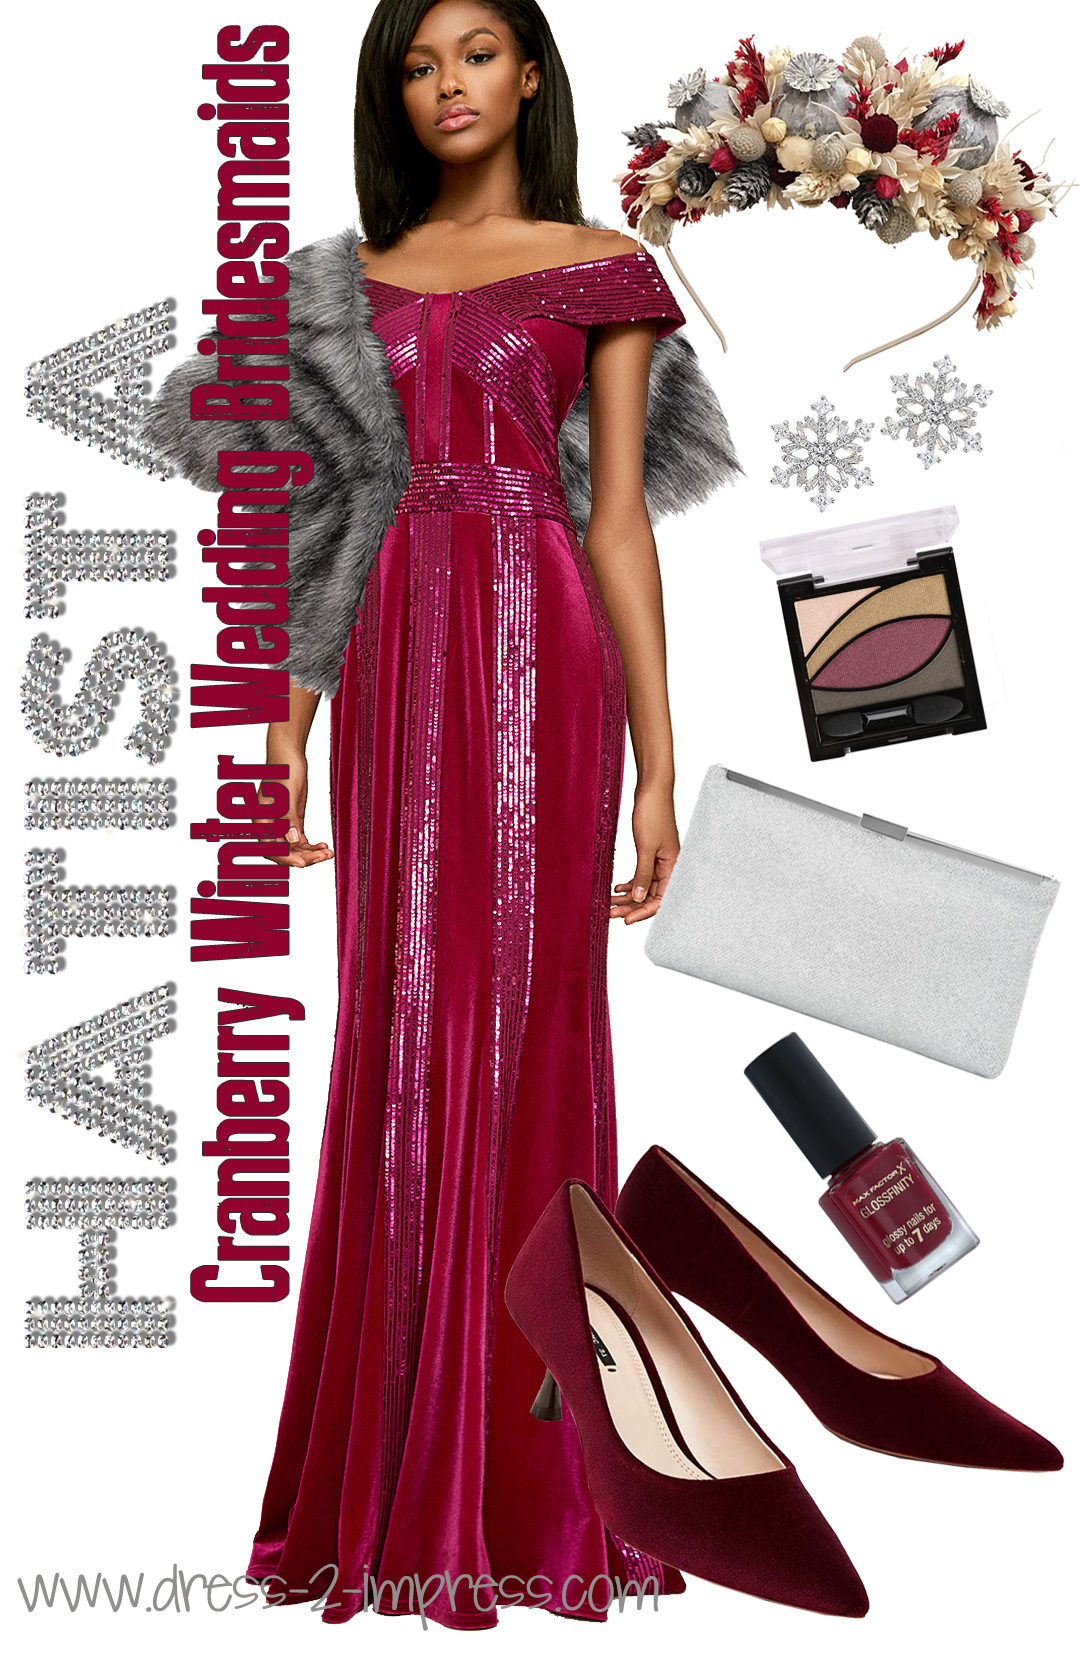 Winter Weddings Bridesmaids Outfits. Cranberry and Silver Winter Wedding Ideas. Burgundy and Silver Bridesmaids Outfits. What colors go with Burgundy. Velvet Bridesmaids Dresses. Winter Wedding Bridesmaids Dresses. Winter Wedding ideas. What to wear for Winter Wedding. #bridesmaids #outfitinspiration #outfitideas